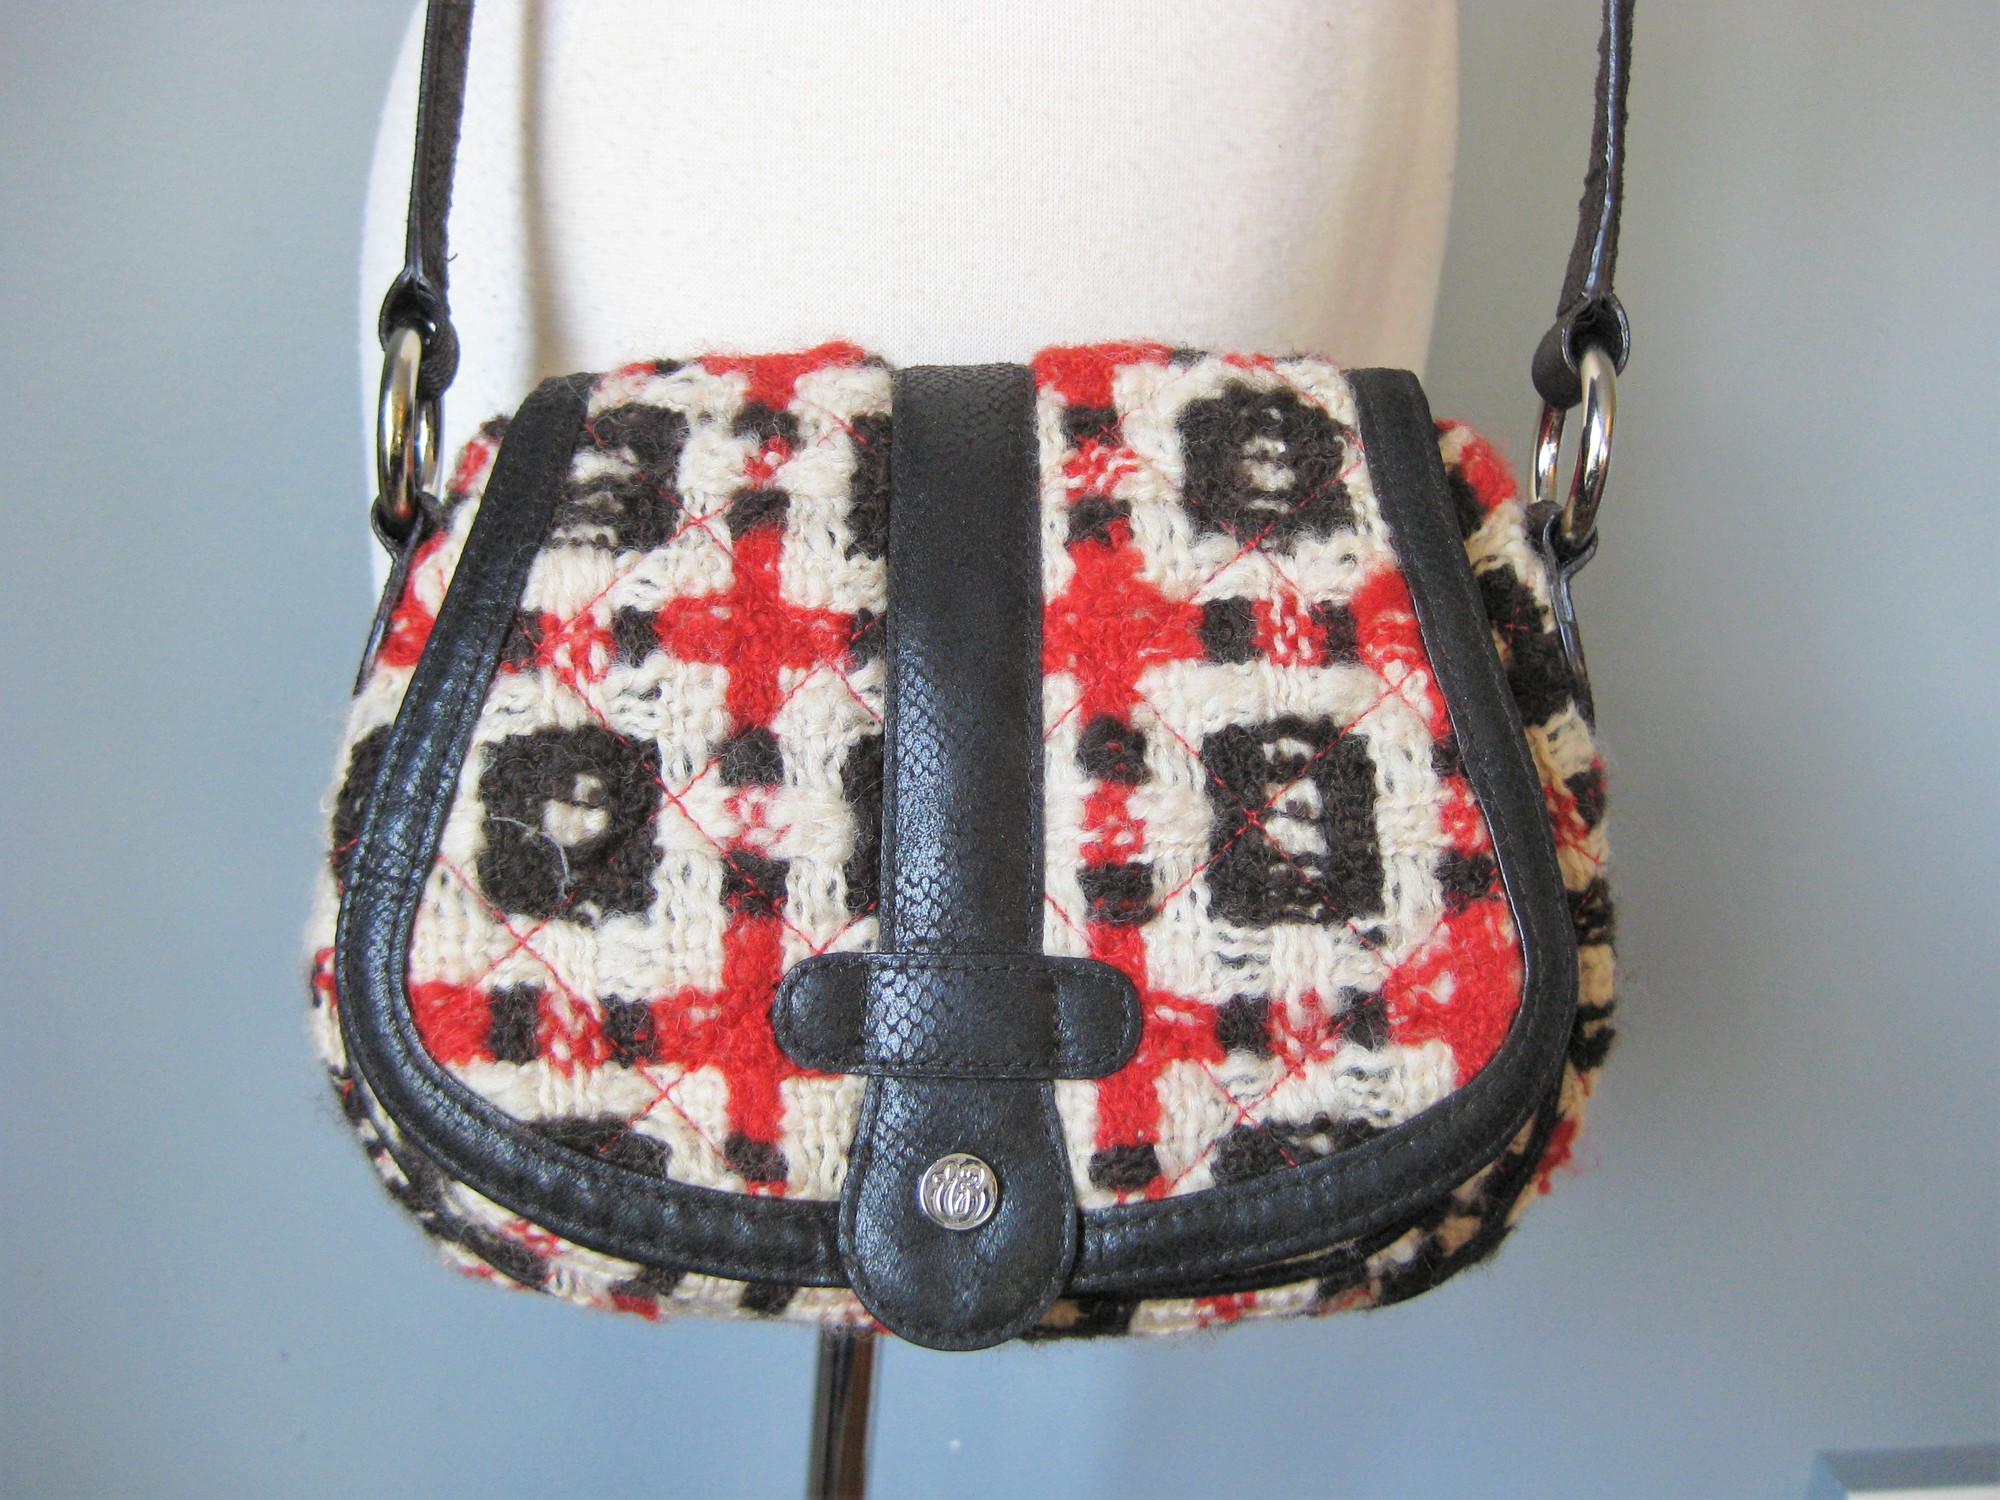 Rare early Vera Bradley bag in chunky red and black quilted tweed.<br /> Small Purse with long cross body adjustable strap<br /> Exterior slip pocket<br /> magnetic clasp<br /> 2 interior slip pockets and one zip pocket<br /> <br /> Excellent condition<br /> <br /> 11in x 7in x 4in<br /> strap drop max 22in<br /> <br /> thanks for looking!